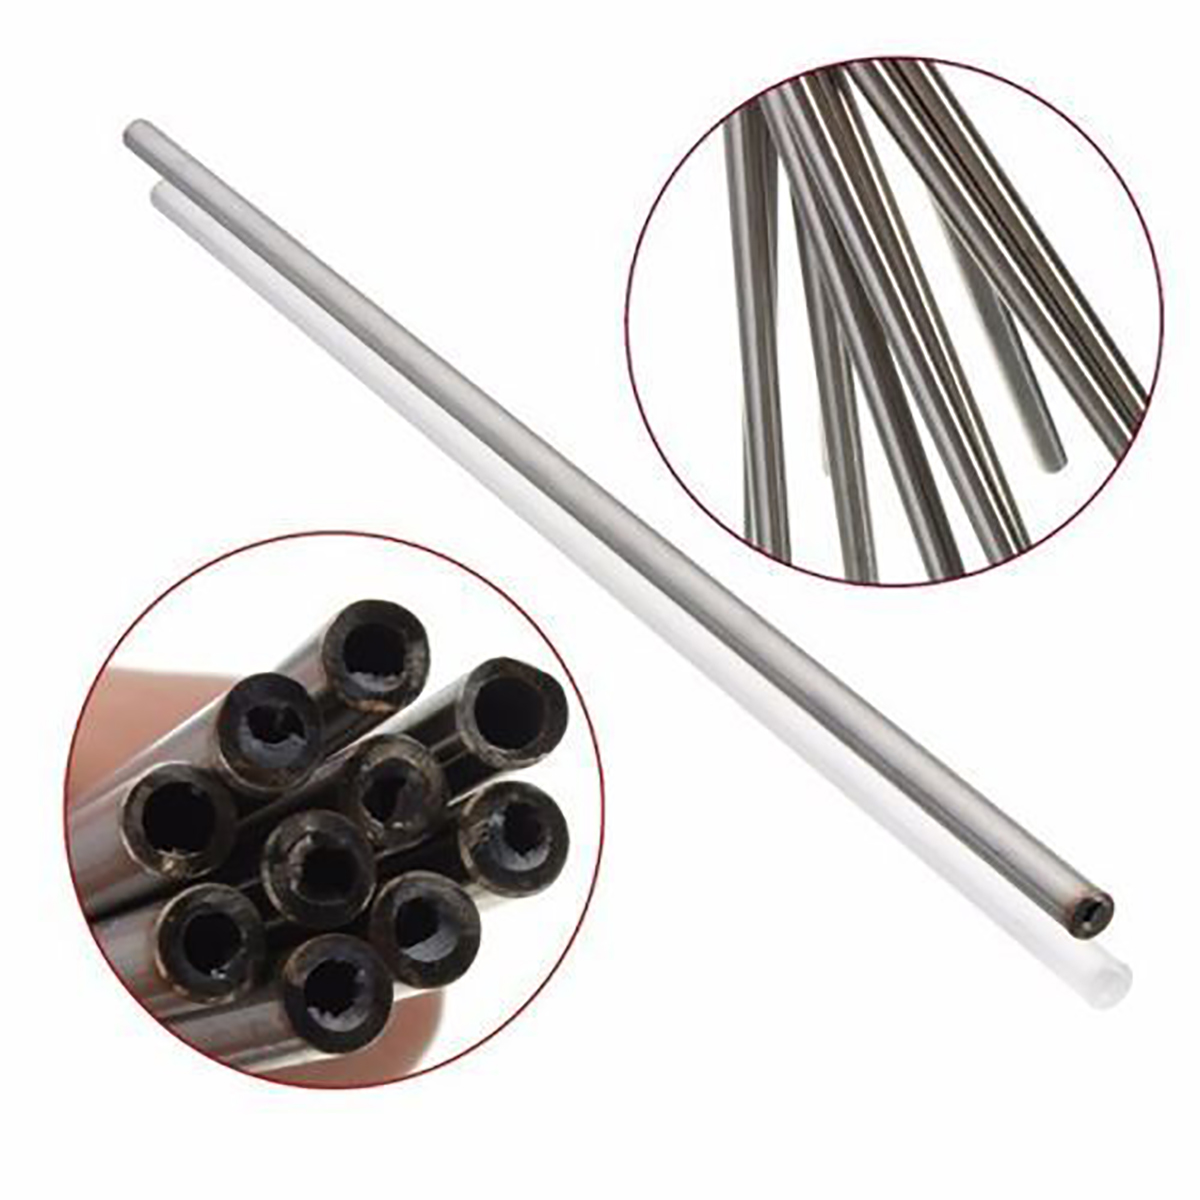 1pc Seamless Capillary Tube 304 Stainless Steel Tube Stick 6mm OD 4mm ID 250mm Length With High Temperature